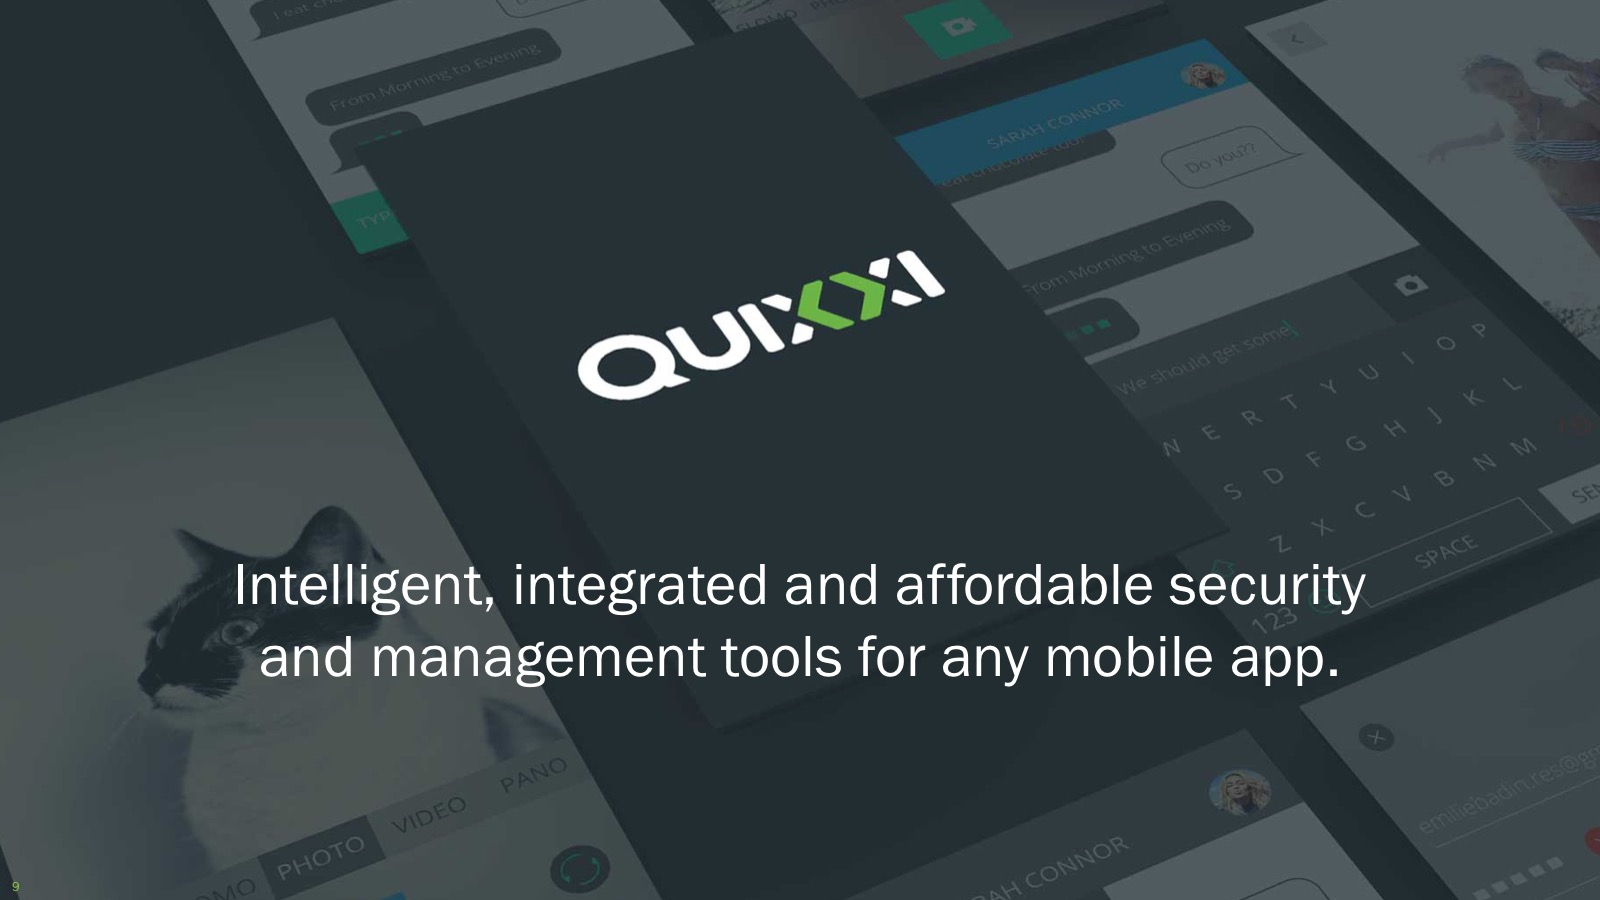 1-2 Why is Quixxi important?